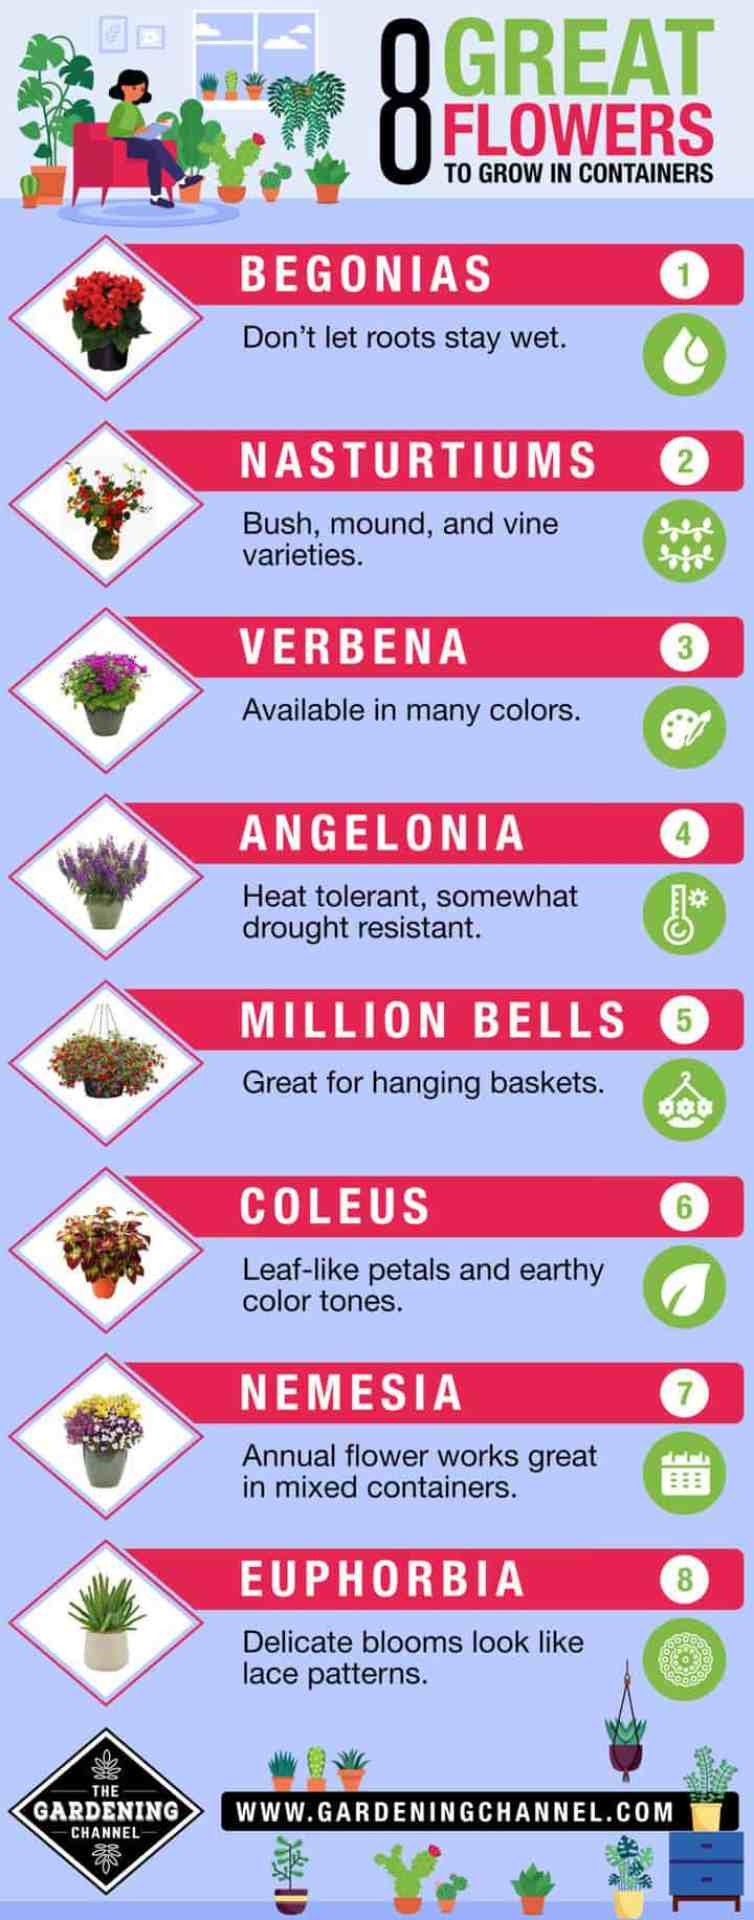 8 Top Flowers to Grow In Containers